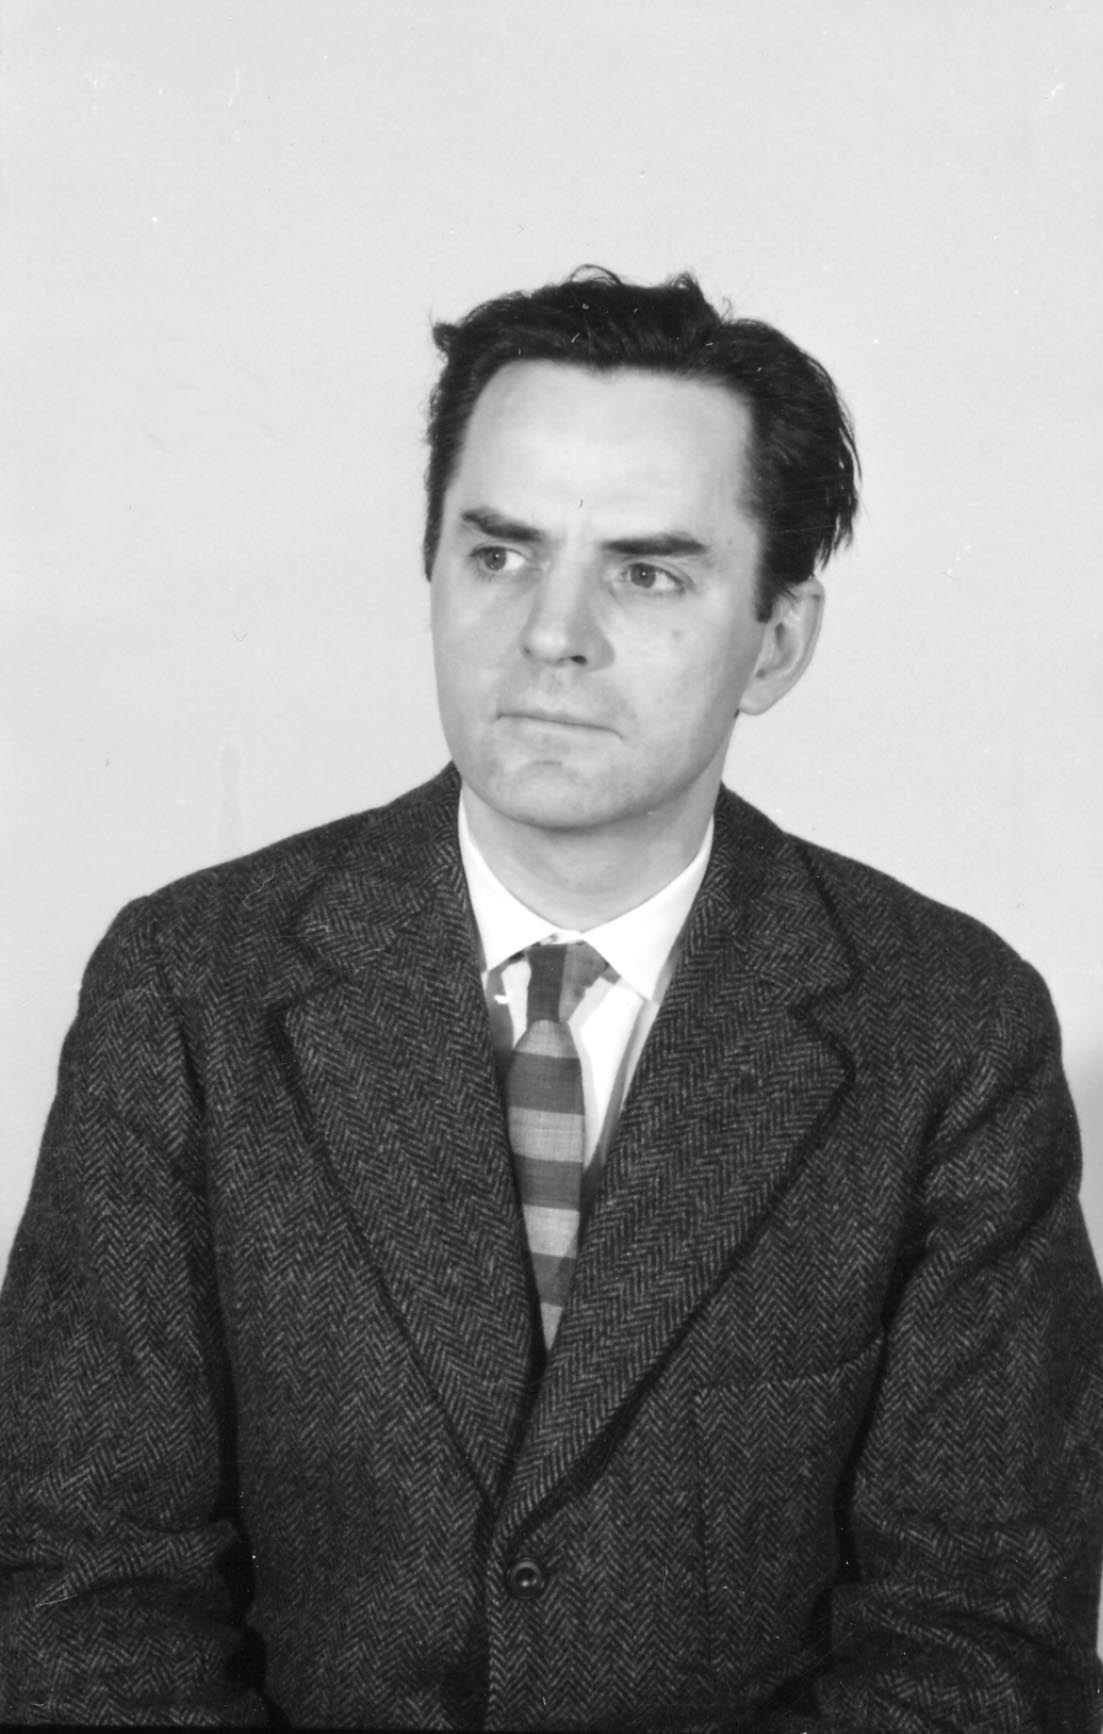 Russell in the 1960 s